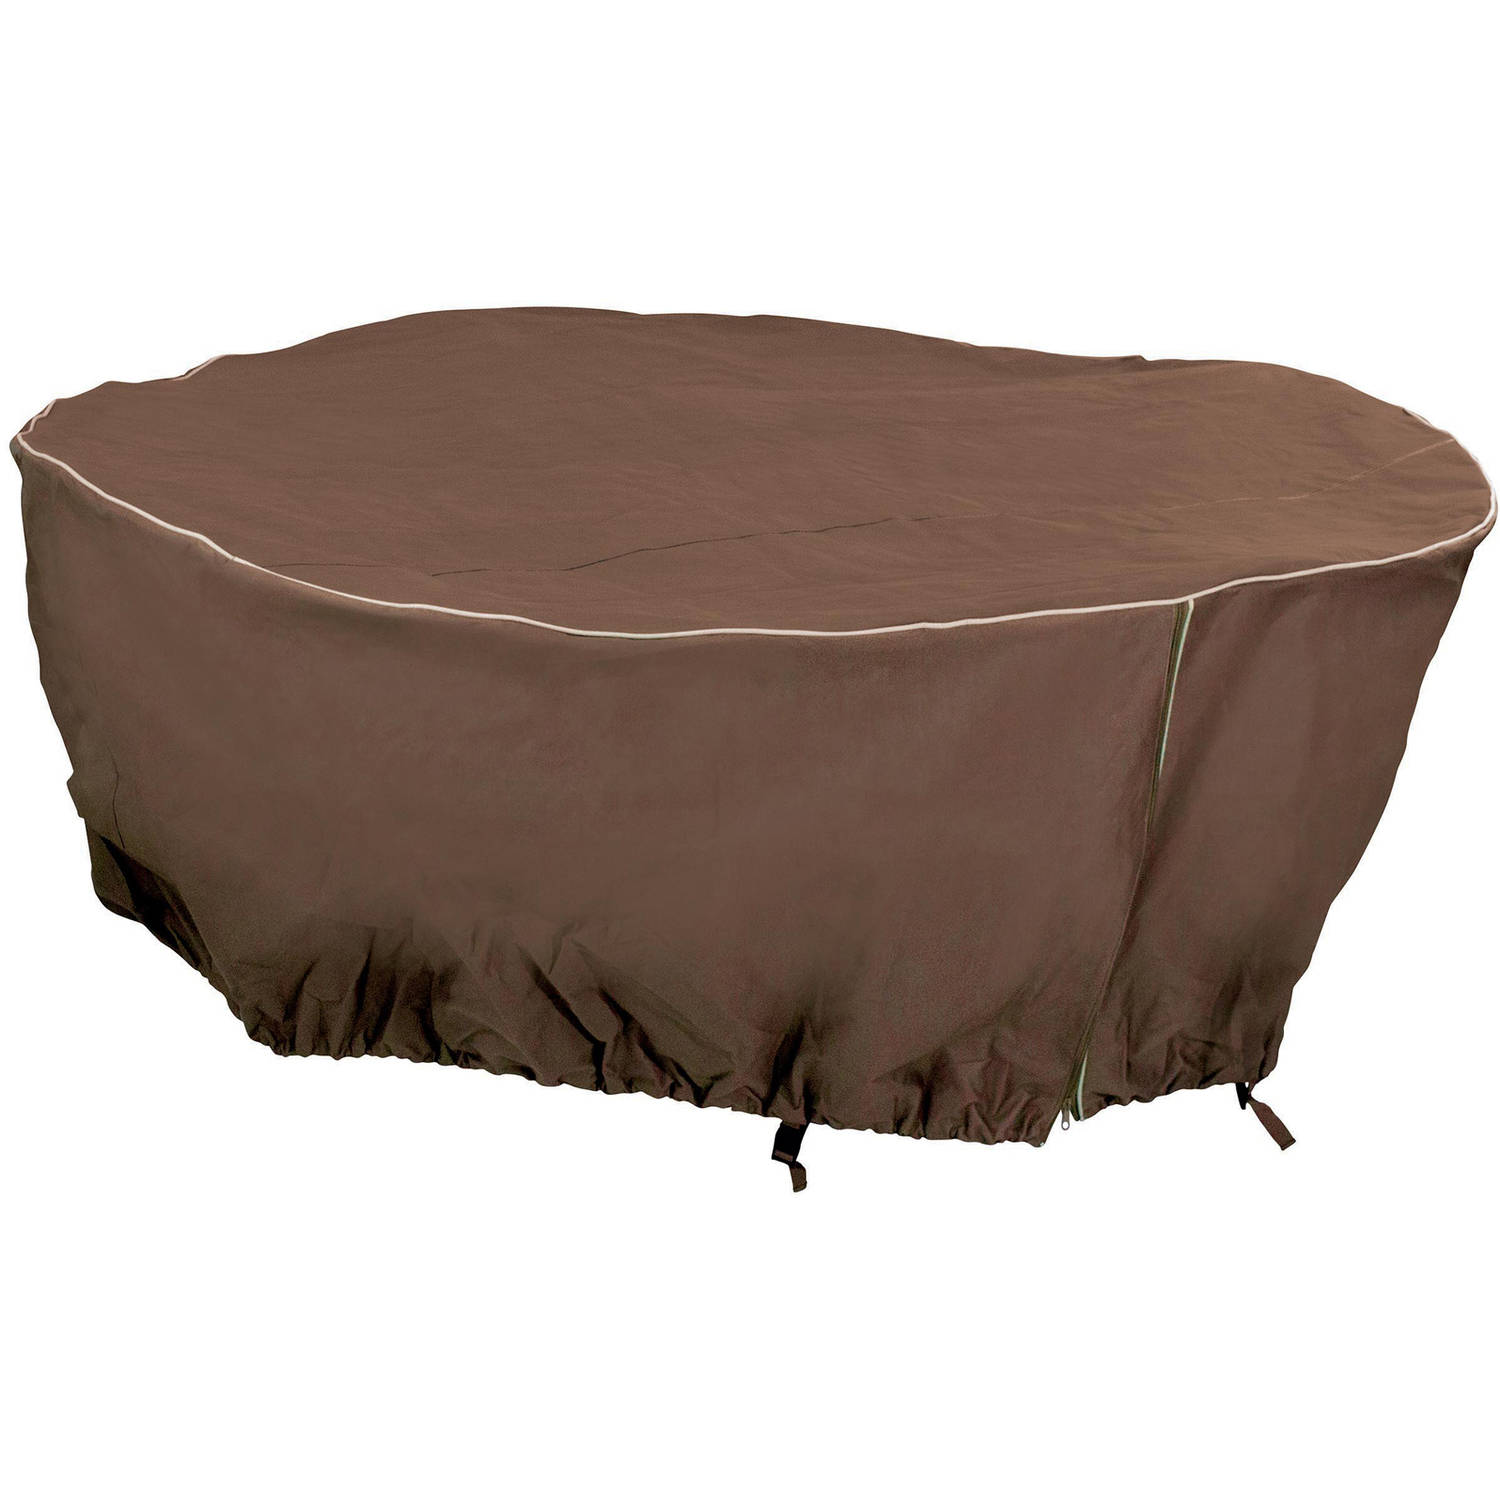 "Armor All Round Table Cover, 80"" x 30"""